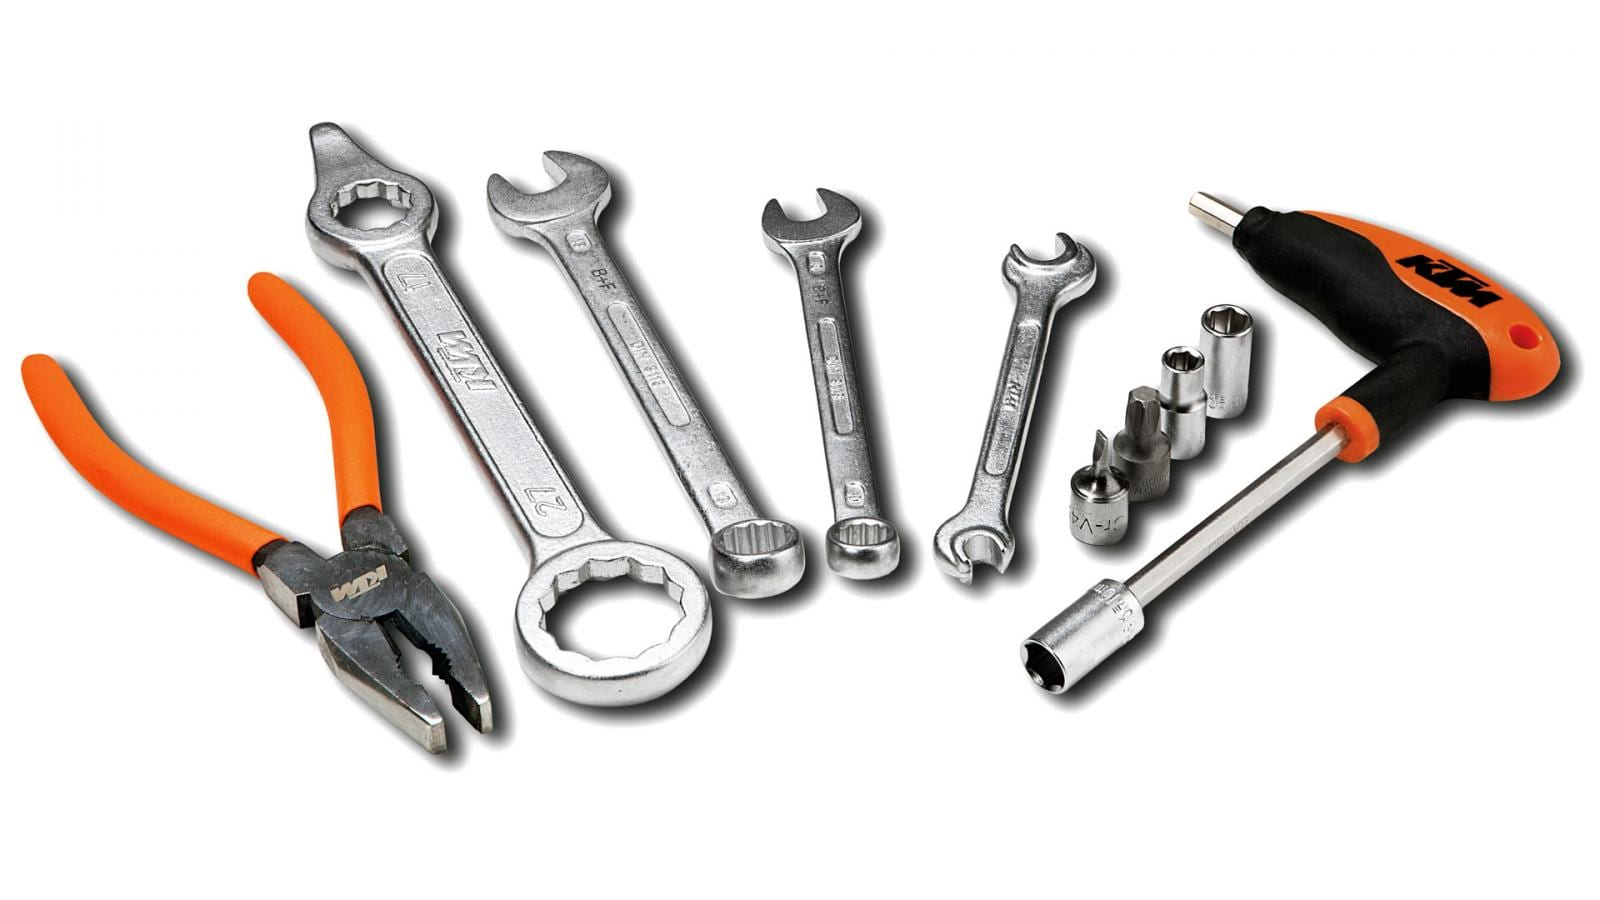 380903 Tools Wallpapers